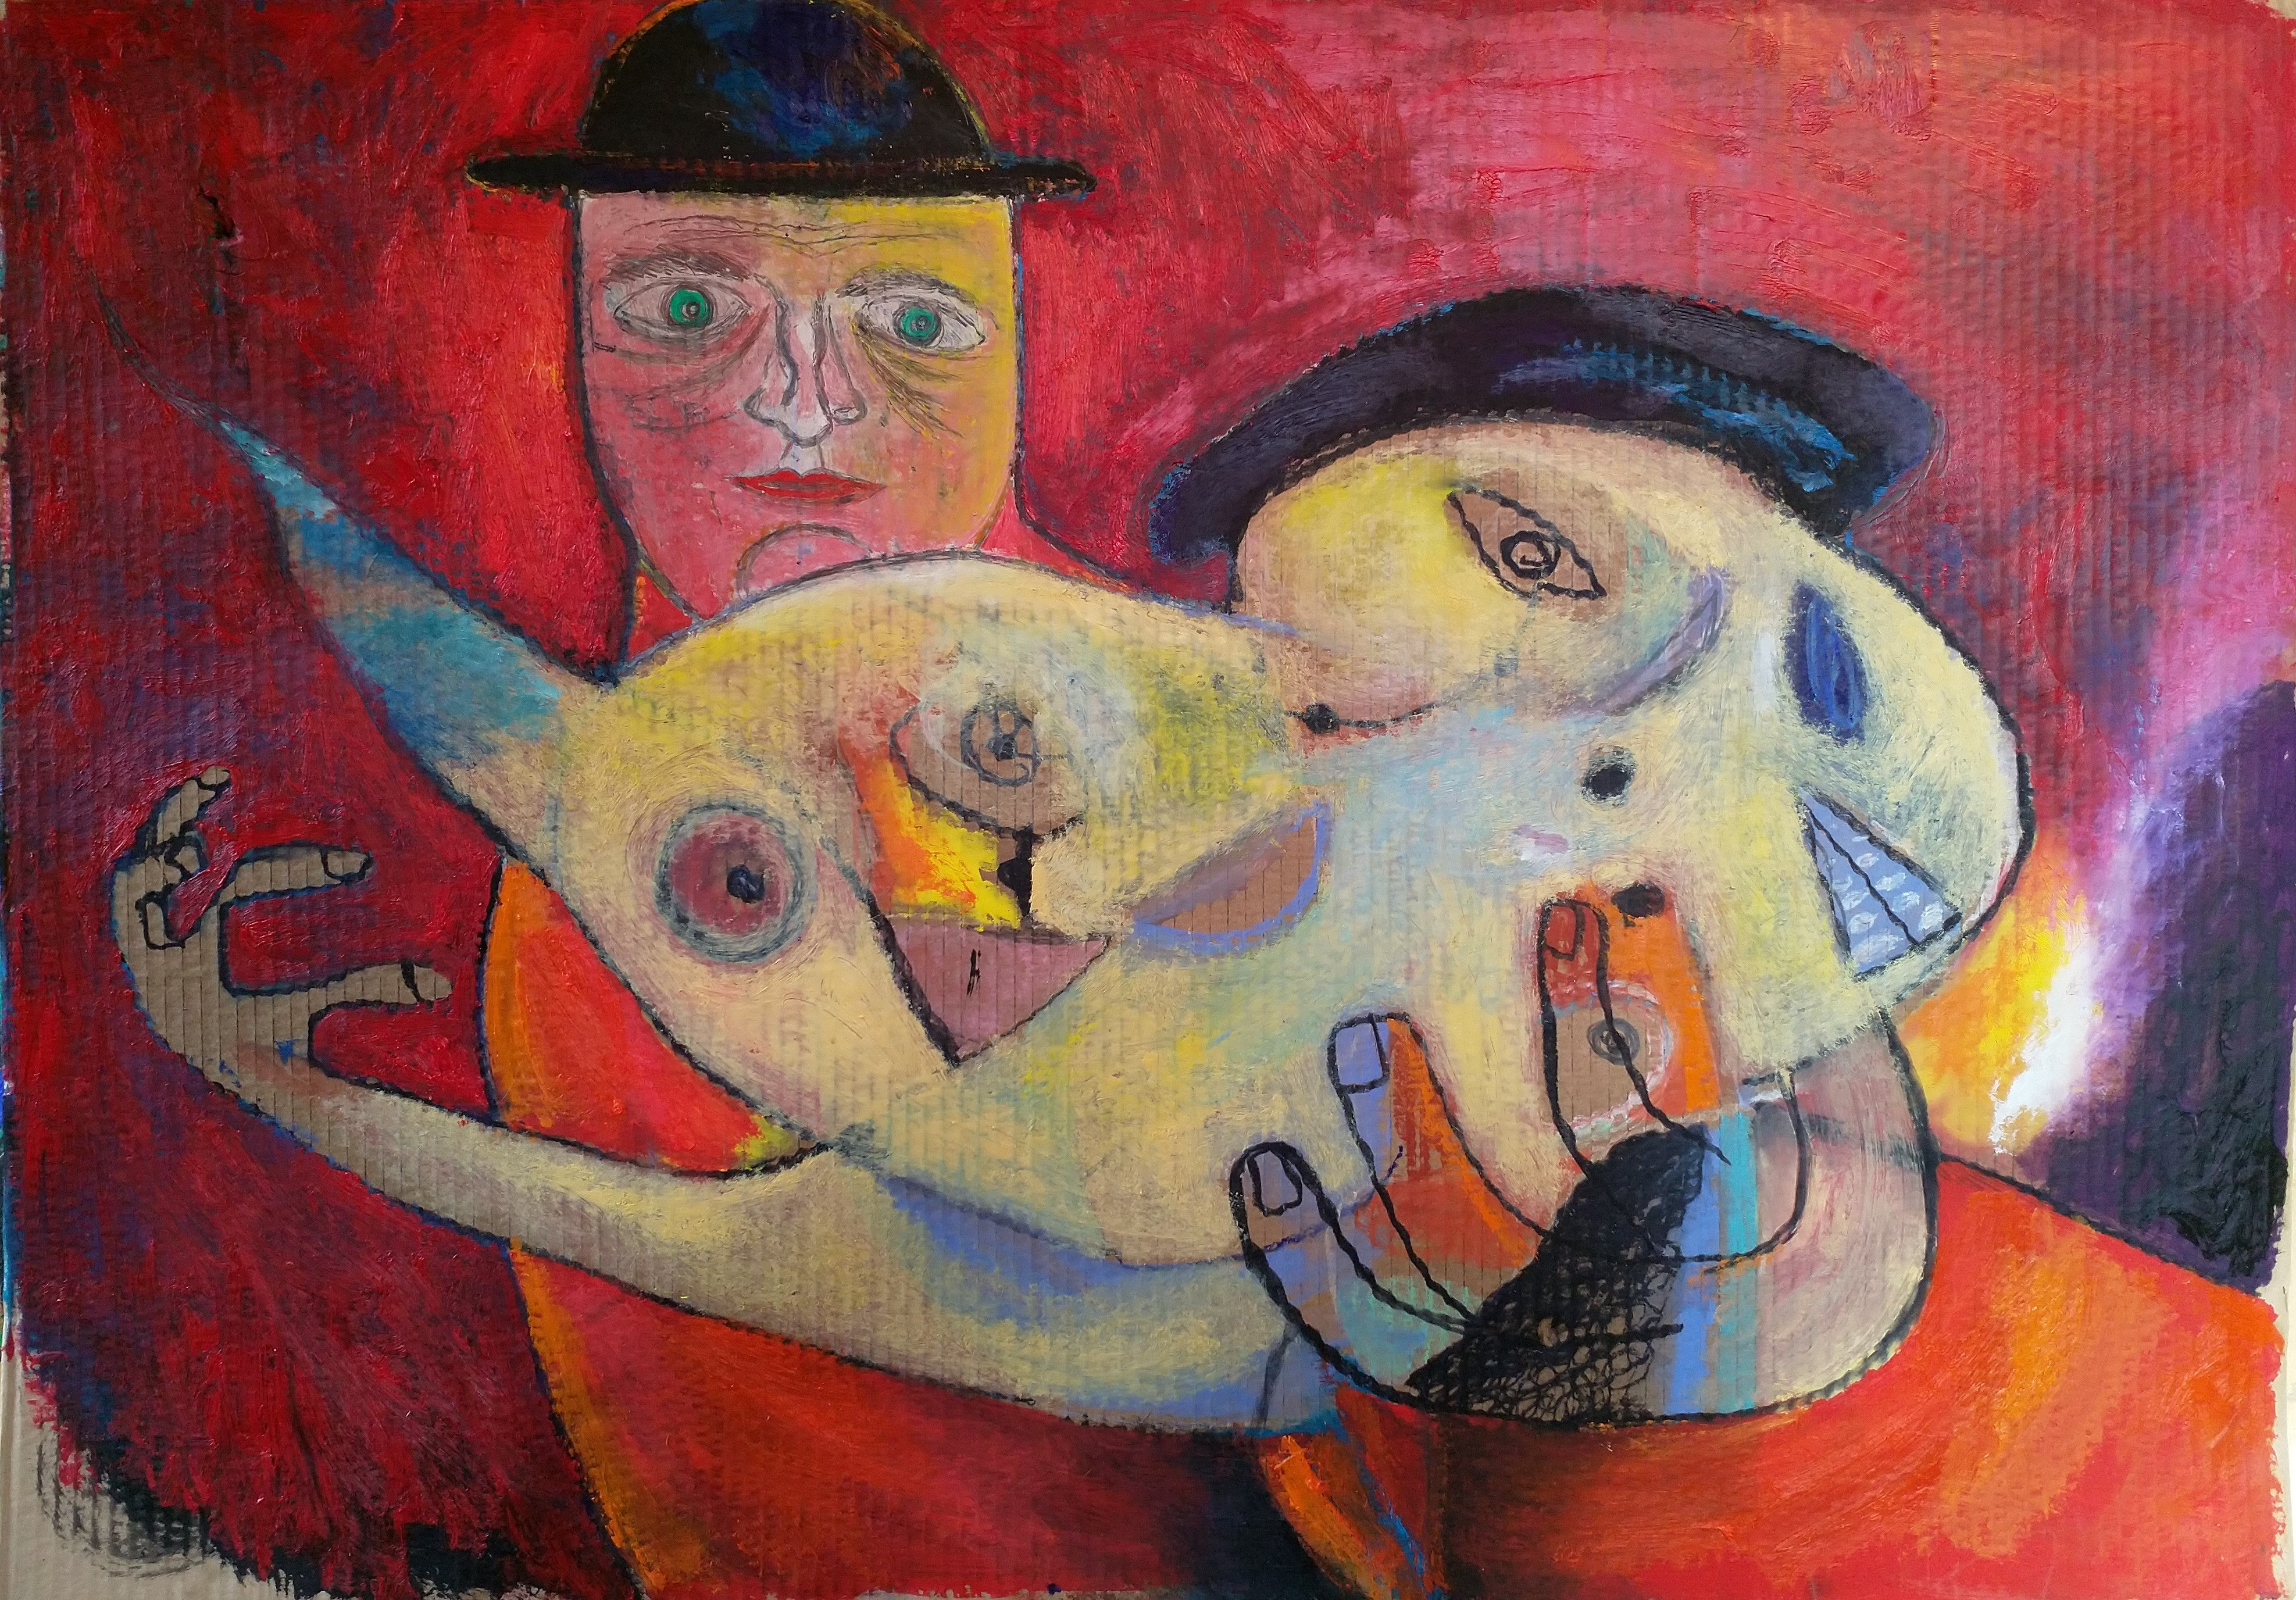 Finding Some Miracle, Szilard Szilagyi, Figurative Expressionist Oil Painting